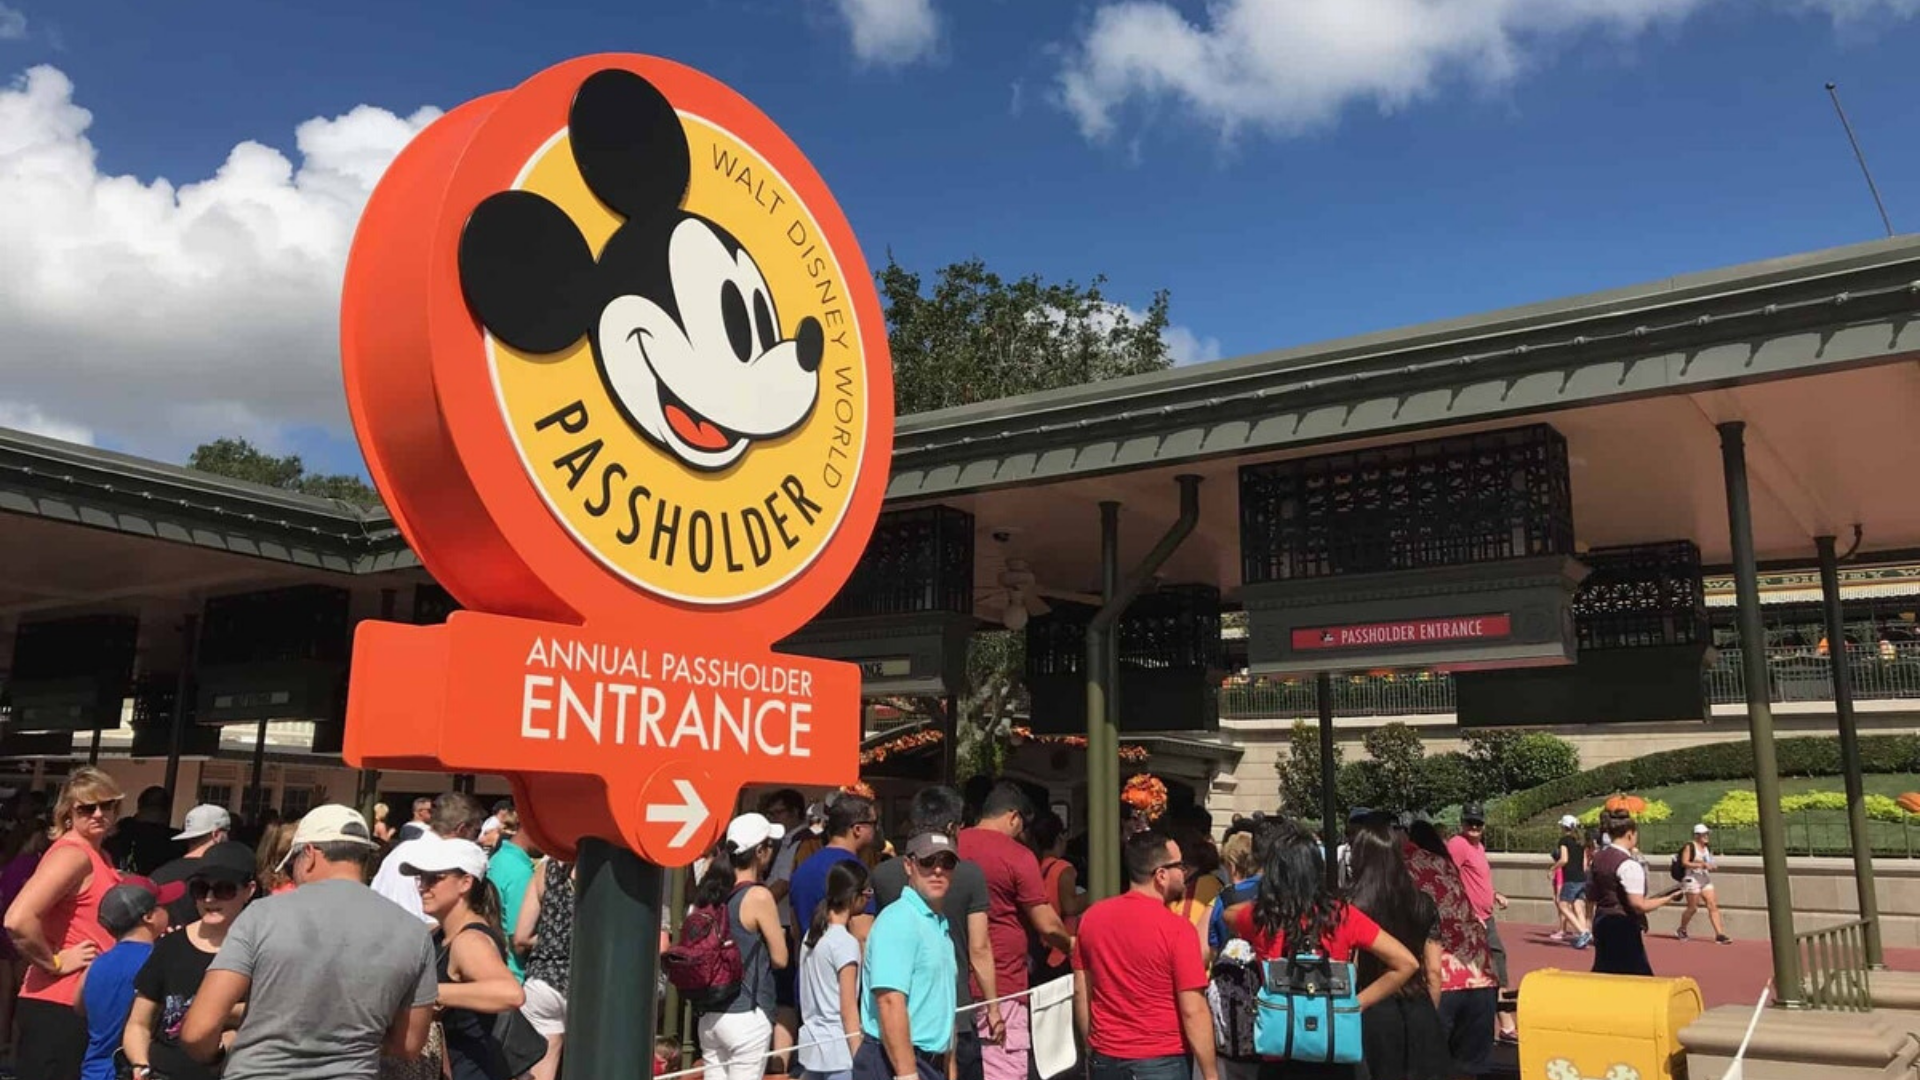 Walt Disney World Releases Official Statement Regarding Monthly Annual Passholder Payment Errors